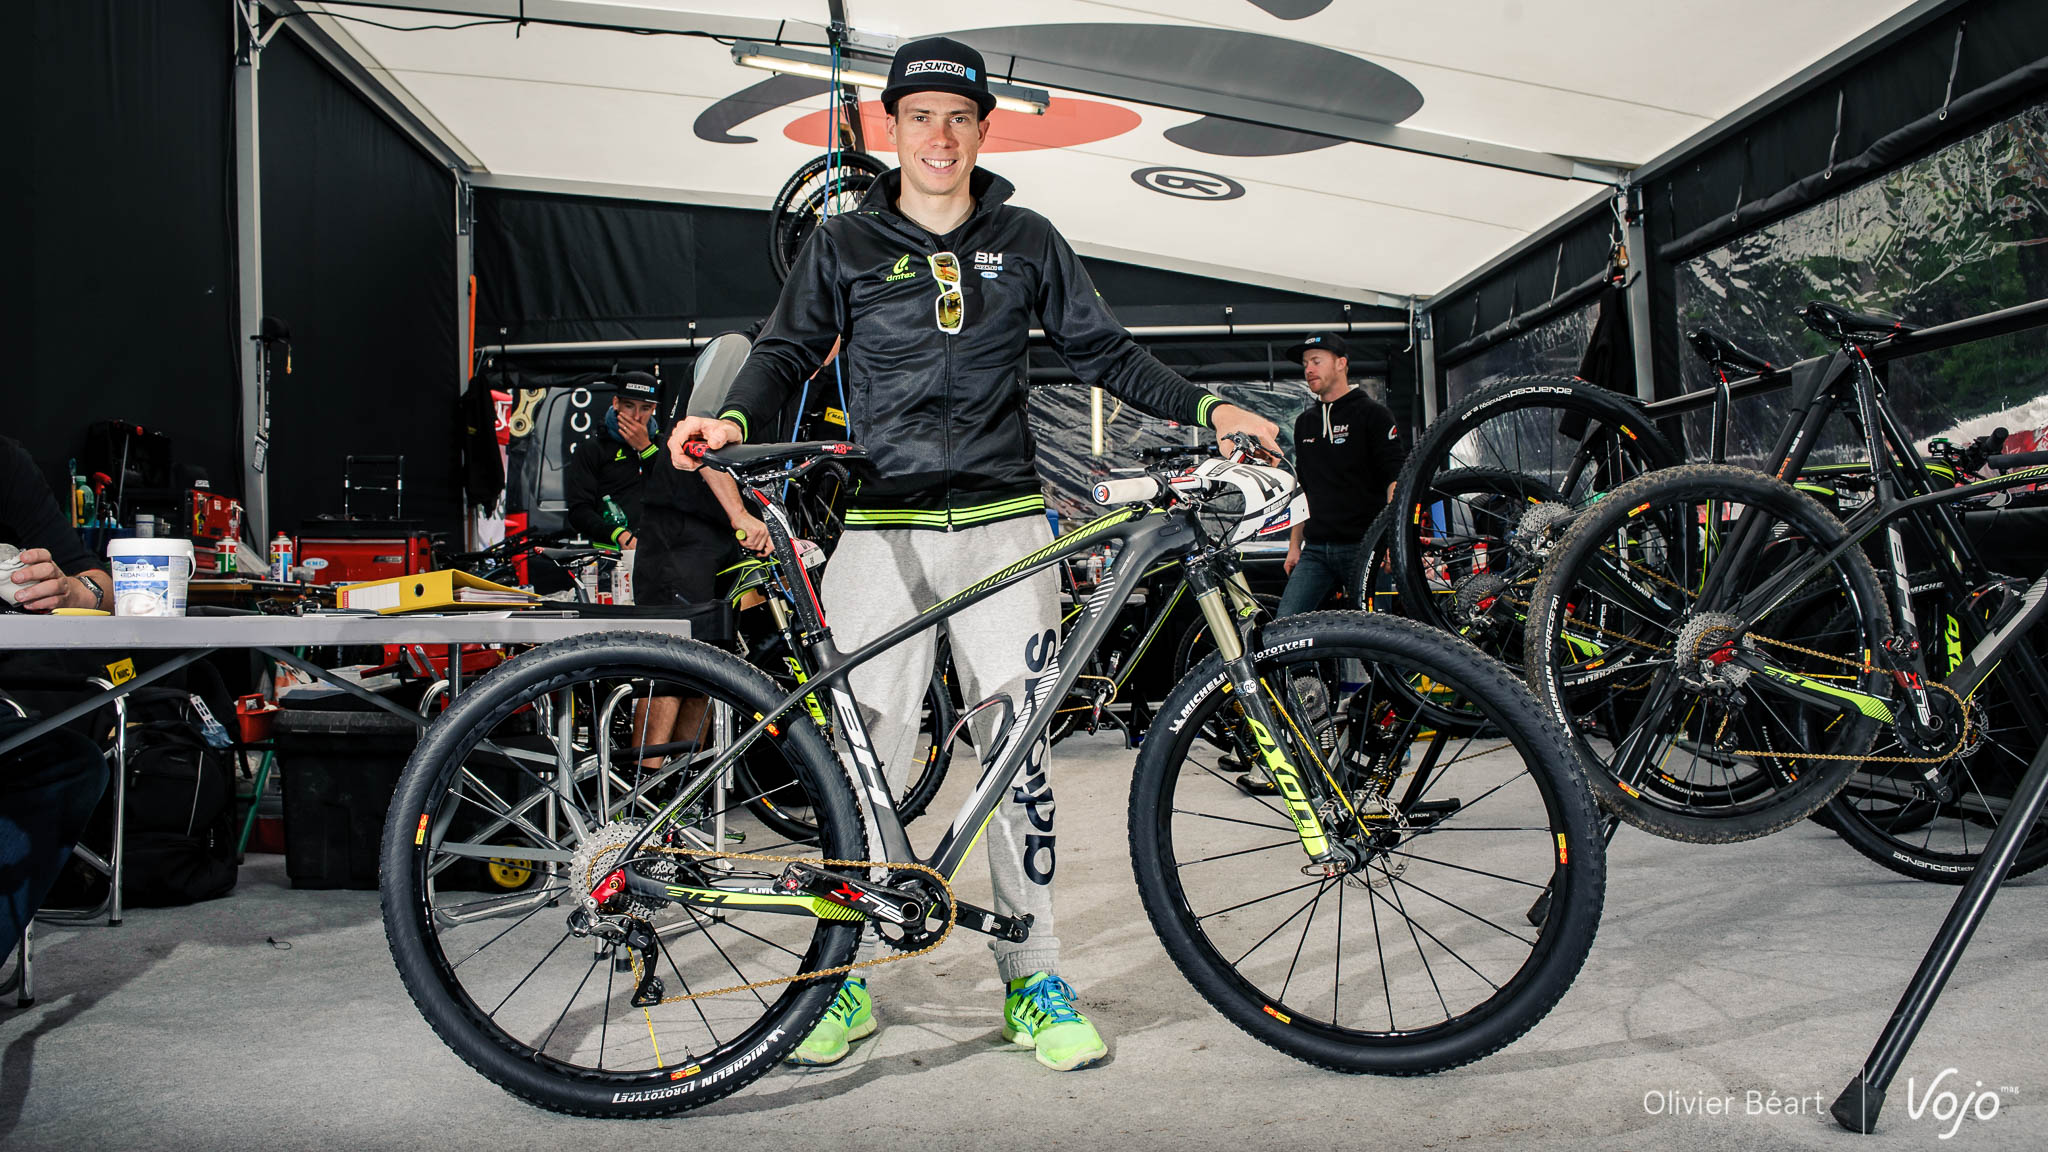 BH_Ultimate_Team_Maxime_Marotte_World_Cup_Bike_Copyright_OBeart_VojoMag-1